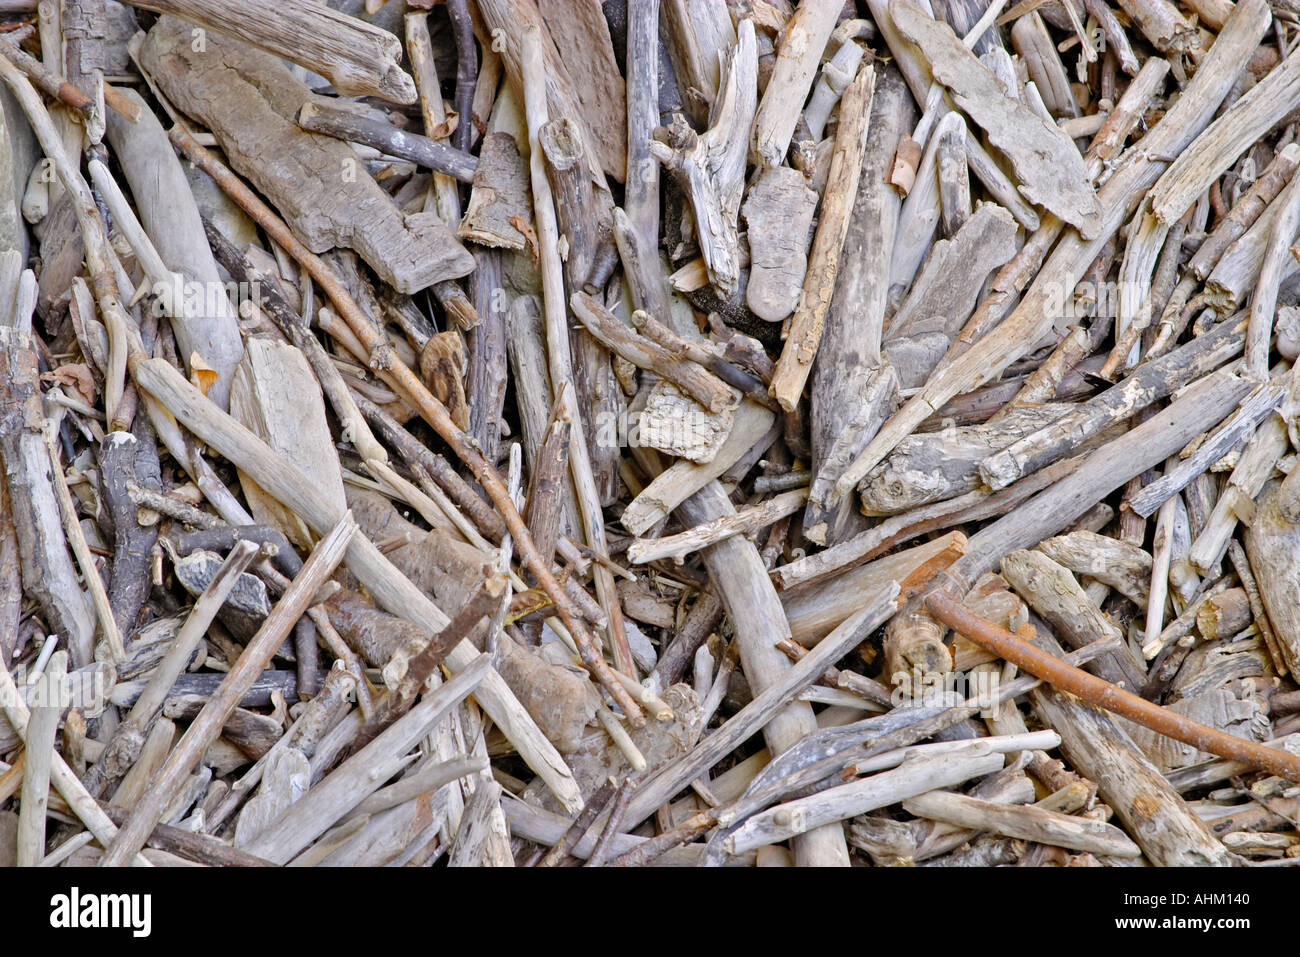 Withered wood sticks texture Valtrebbia Italy Stock Photo